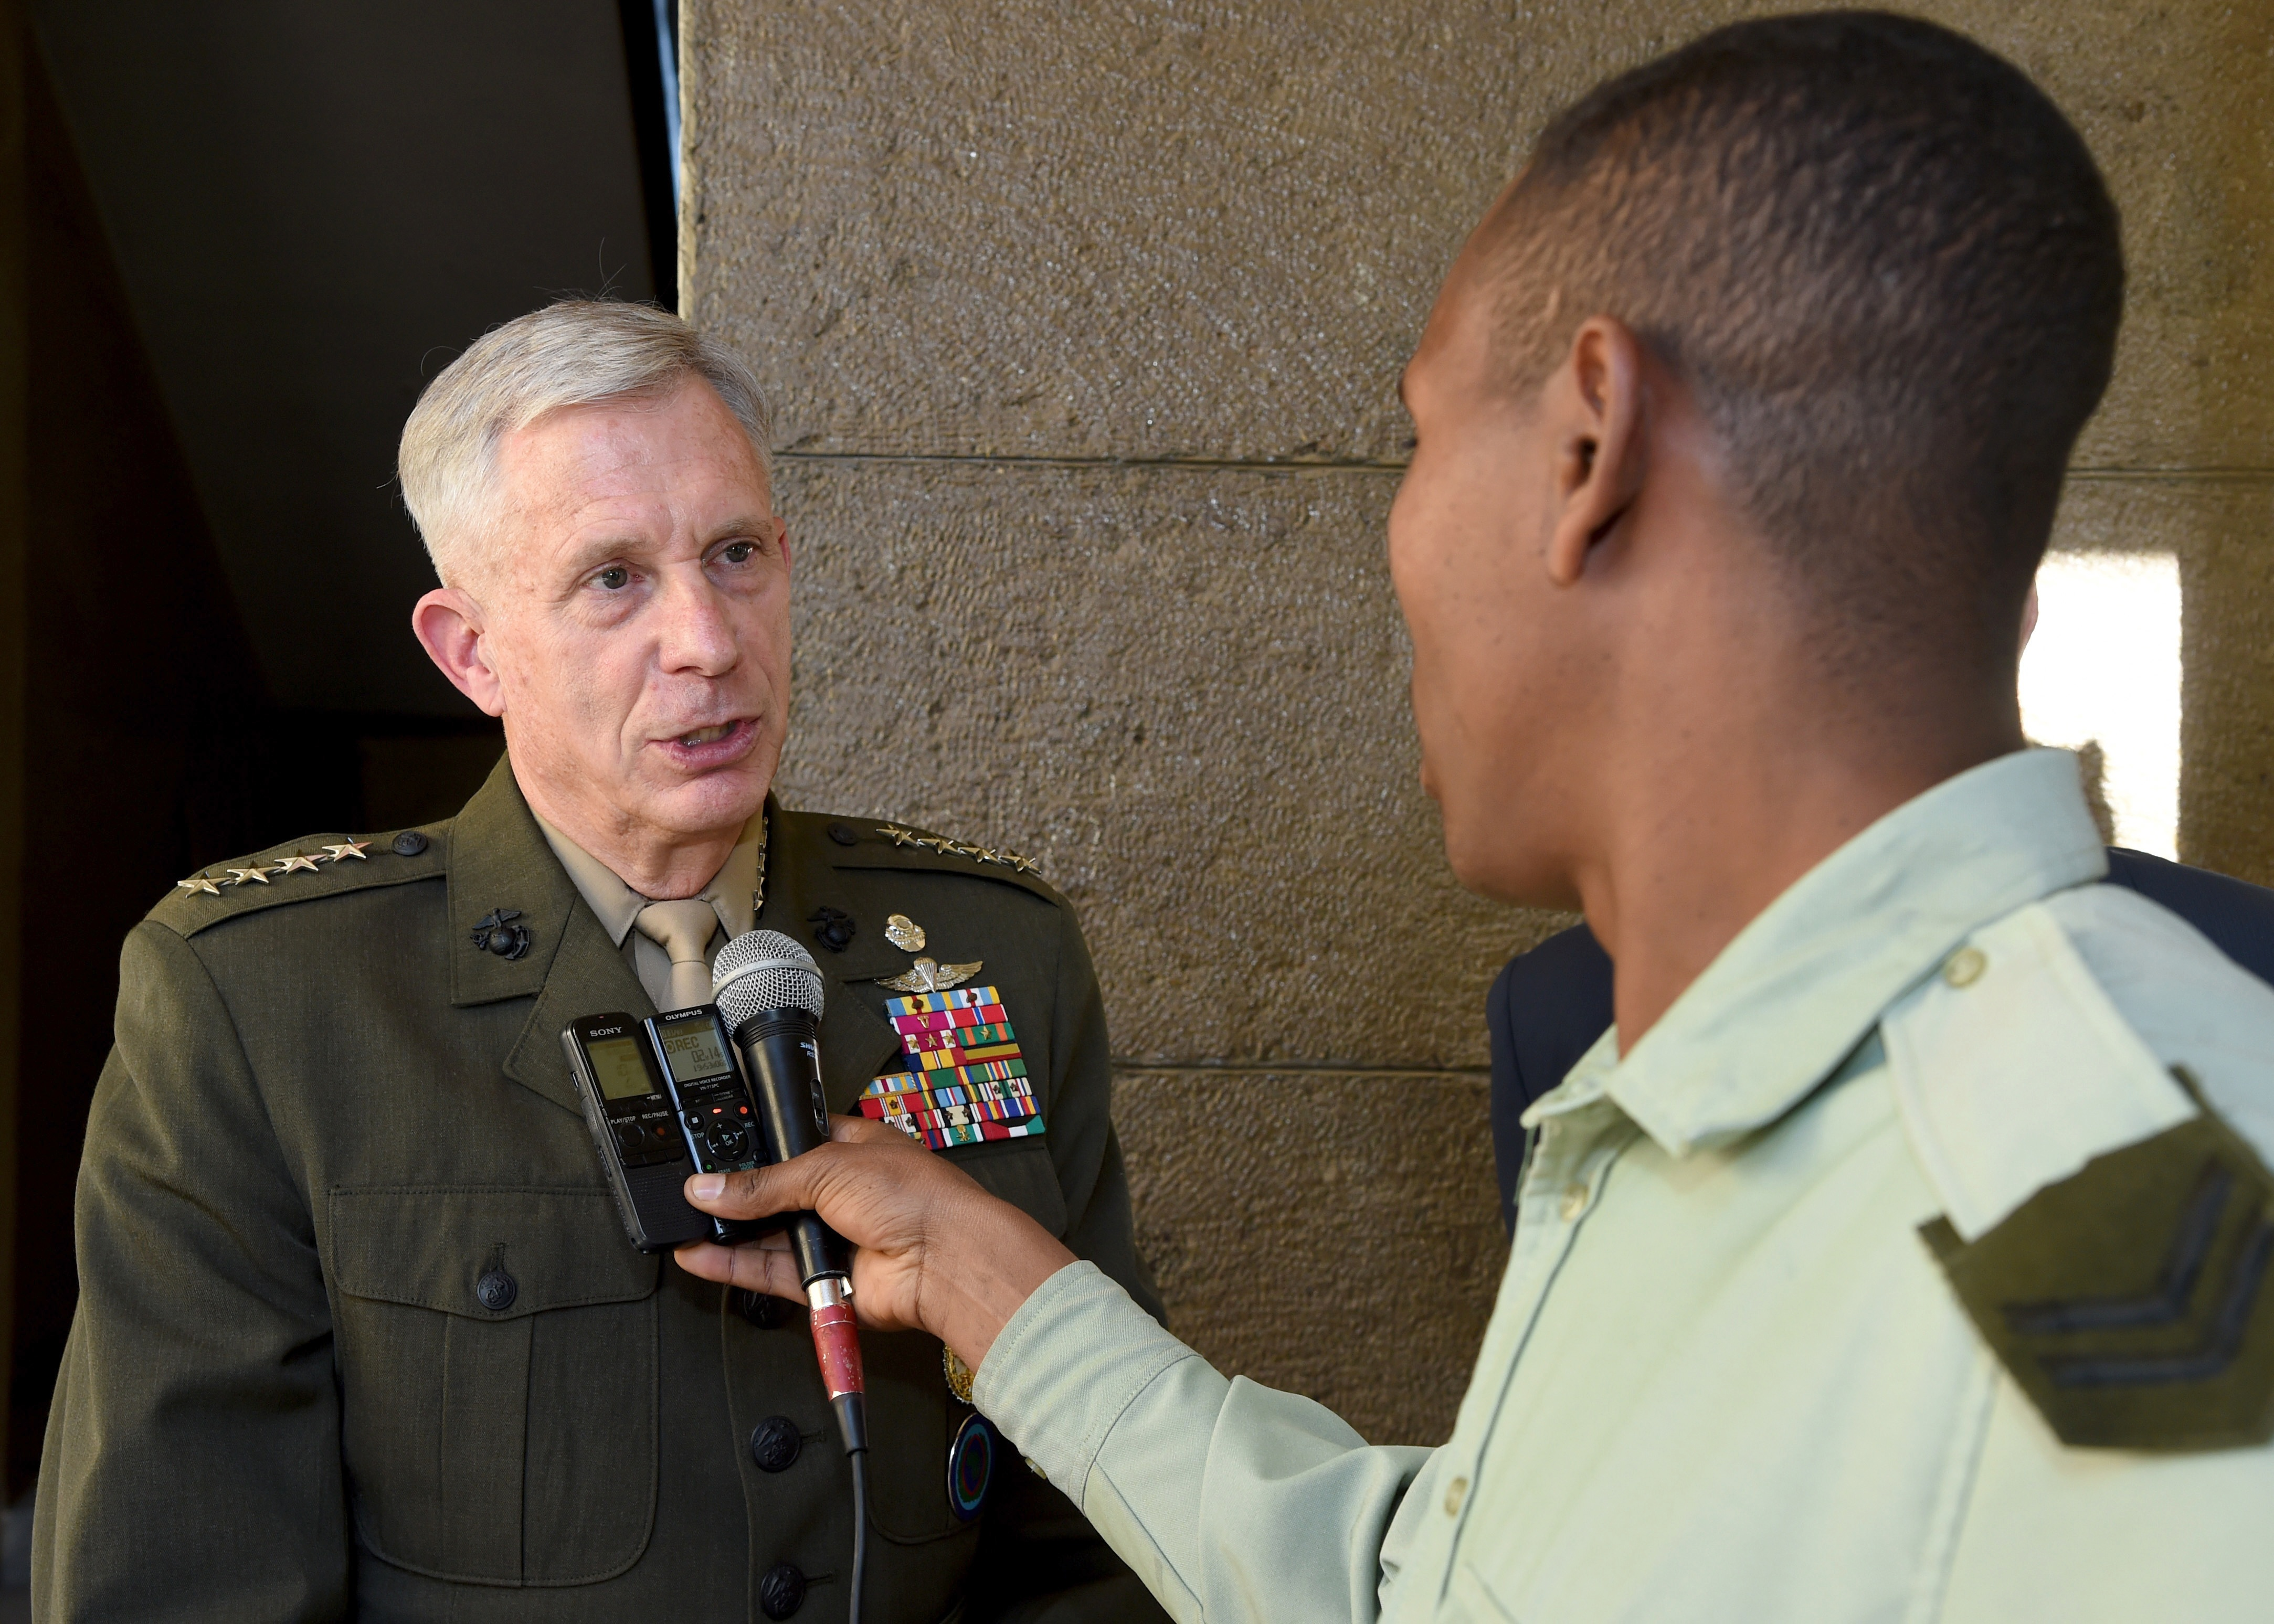 ADDIS ABABA, Ethiopia – U.S. Marine Gen. Thomas D. Waldhauser, Commander, U.S. Africa Command, speaks with an Ethiopian Army reporter at a meeting in Addis Ababa, EthiopiaNov. 28, 2018. During his visit to Addis Ababa, Waldhauser also met with Ethiopian Minister of Defense Aisha Mohammed, U.S. Ambassador to Ethiopia Michael Raynor, and Assistant Secretary of State for the Bureau of African Affairs, Tibor P. Nagy. 